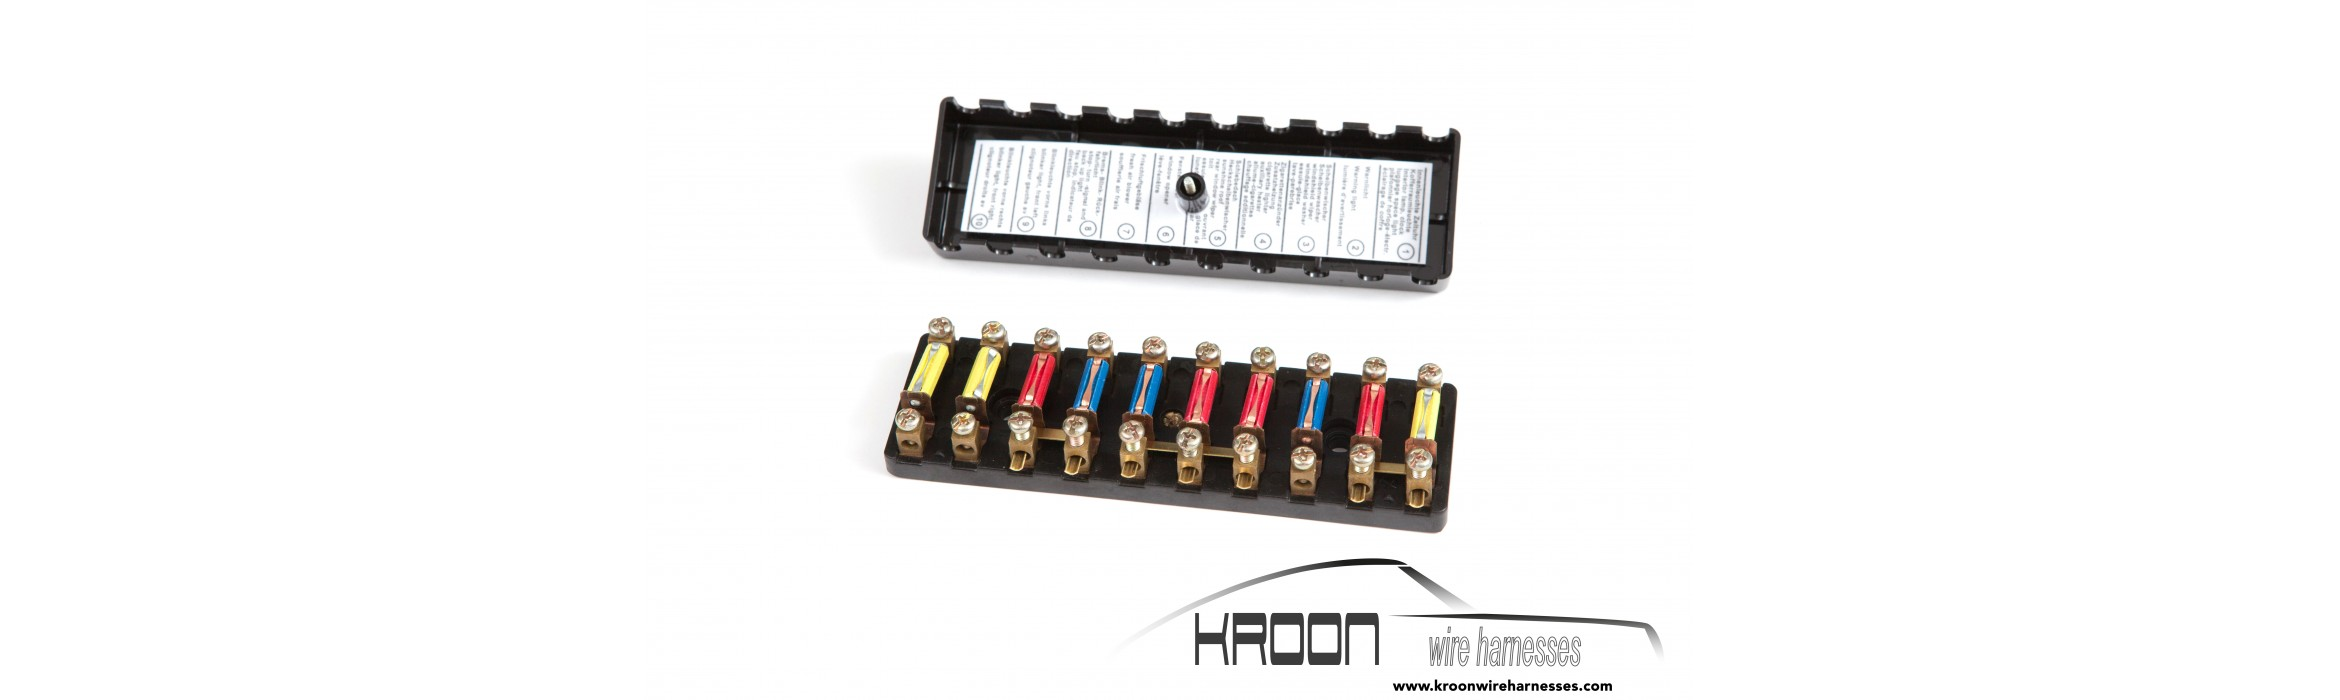 kroon wire harnesses rh kroonwireharnesses com Ynz Wiring Harness Engine Wiring Harness